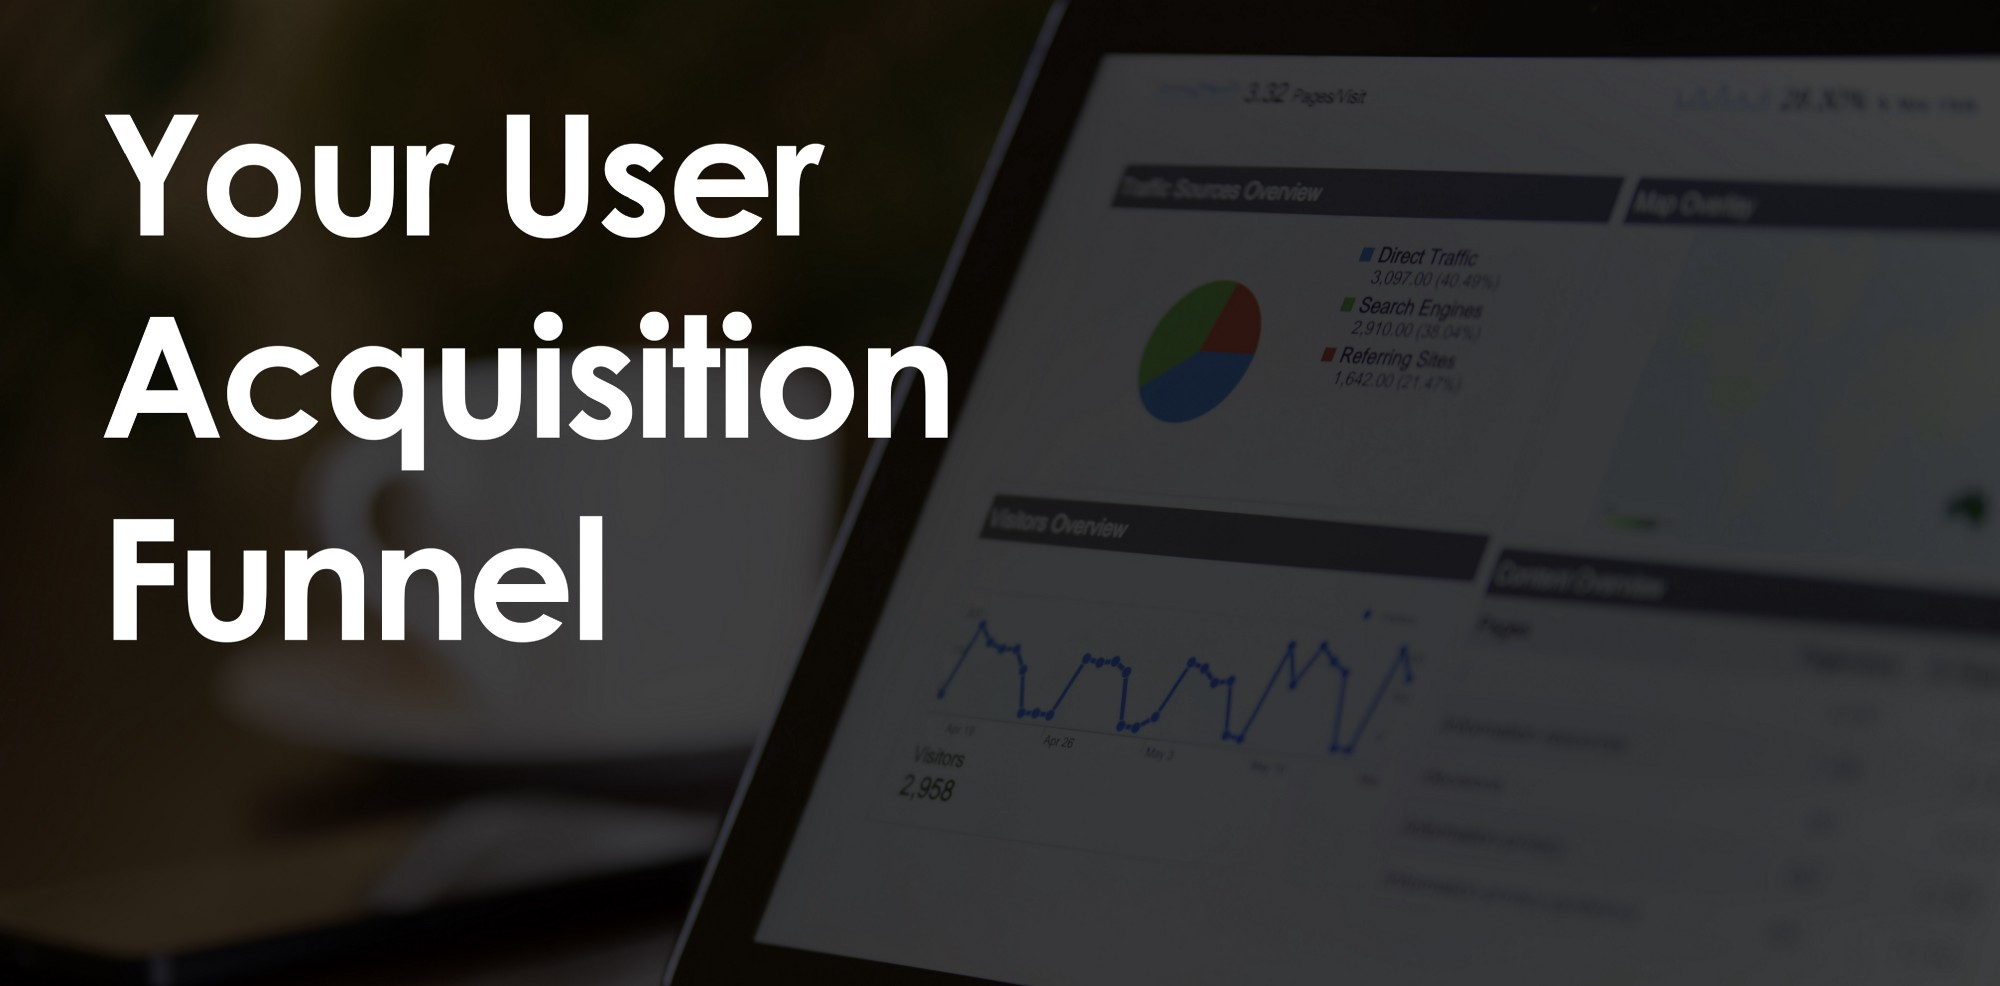 Your User Acquisition Funnel: Jobs To Be Done, and other considerations